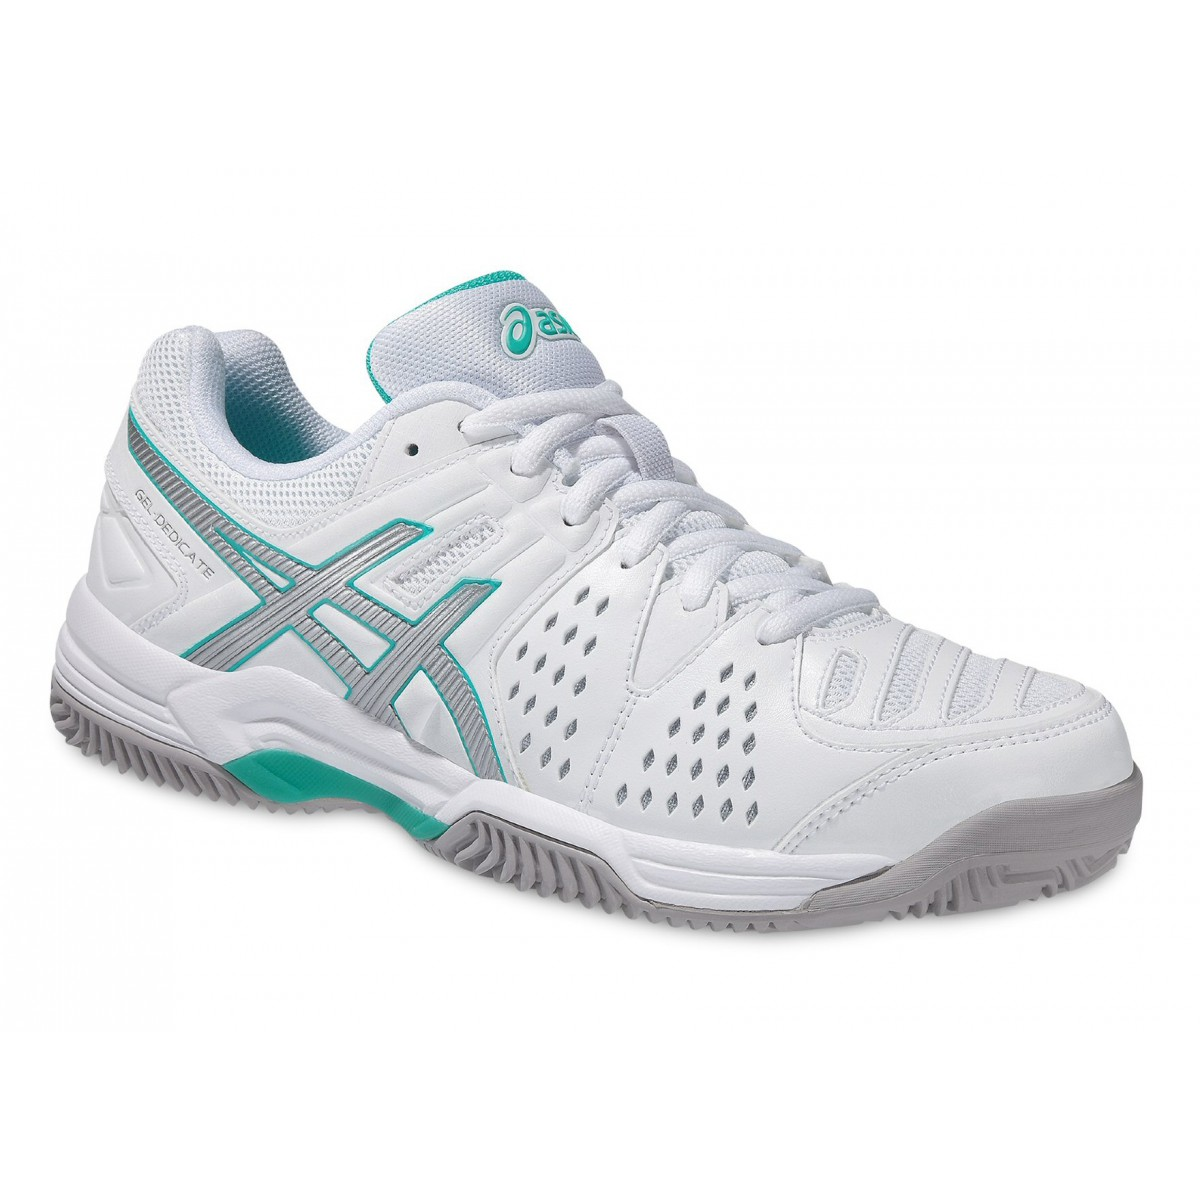 asics gel dedicate 4 clay weiss mint tennisschuhe damen versandkostenfrei online bestellen. Black Bedroom Furniture Sets. Home Design Ideas